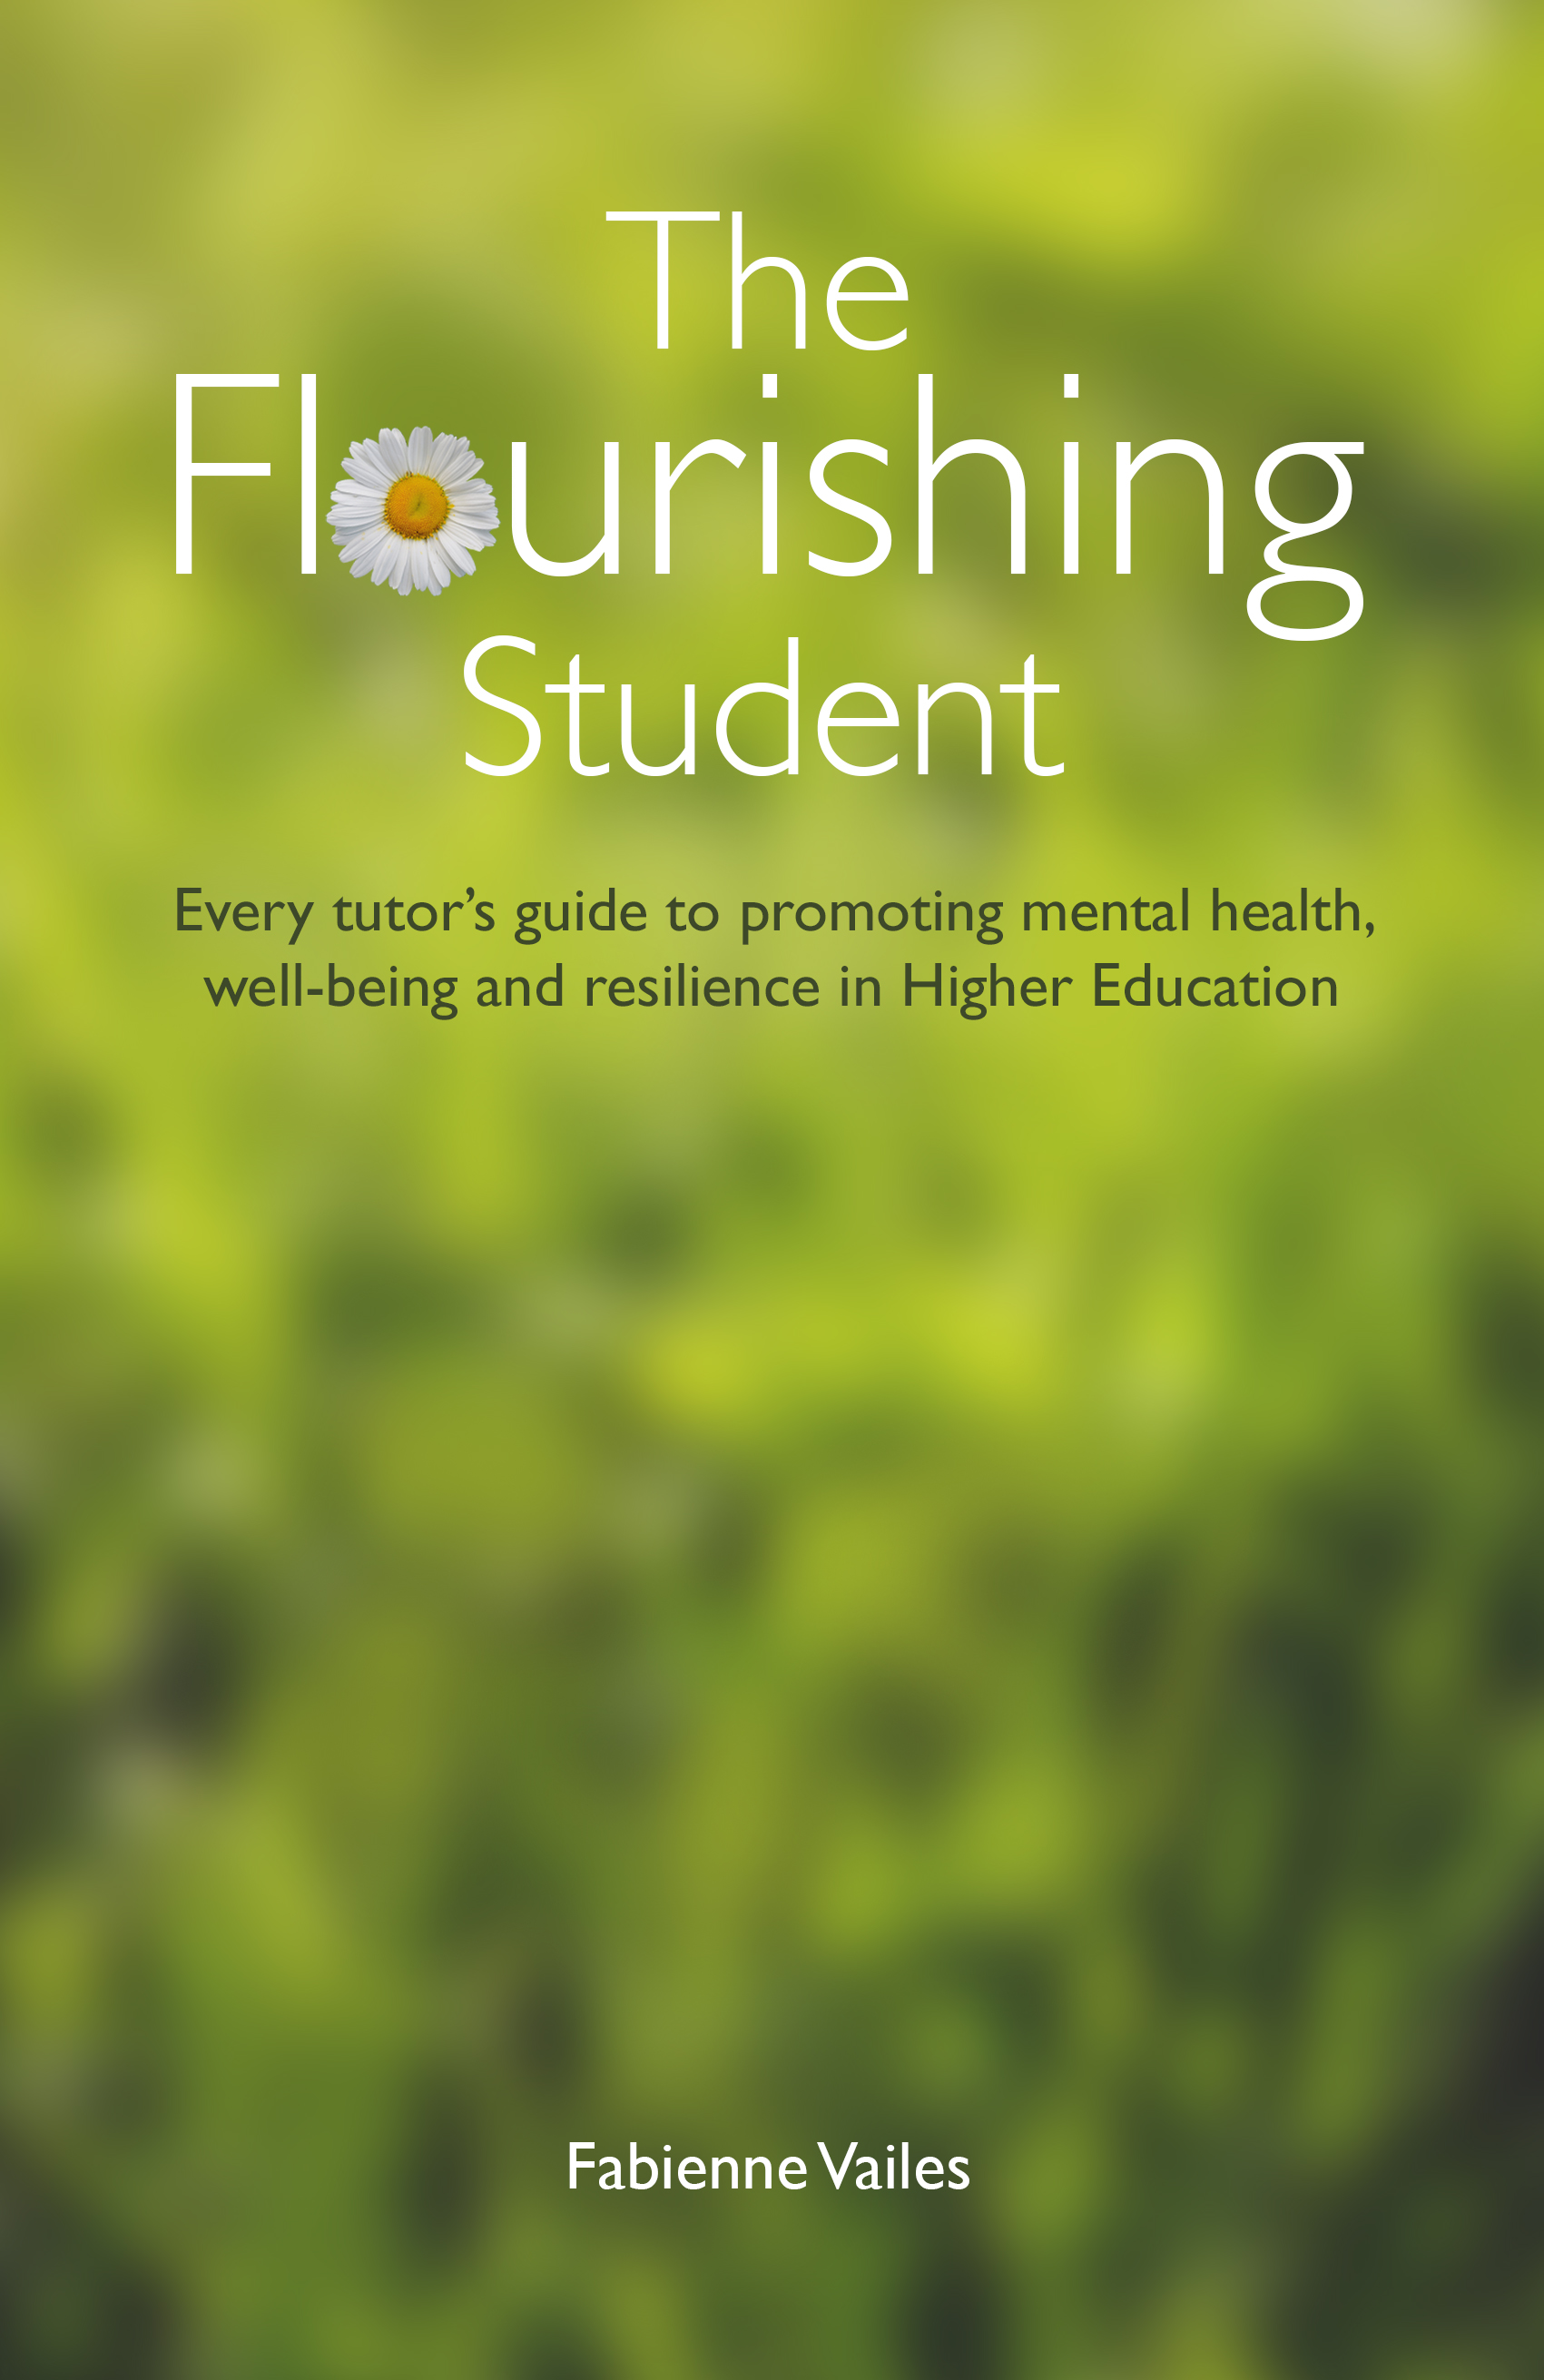 Book cover for The Flourishing Student:  Every tutor's guide to promoting mental health, well-being and resilience in Higher Education a book by Fabienne  Vailes